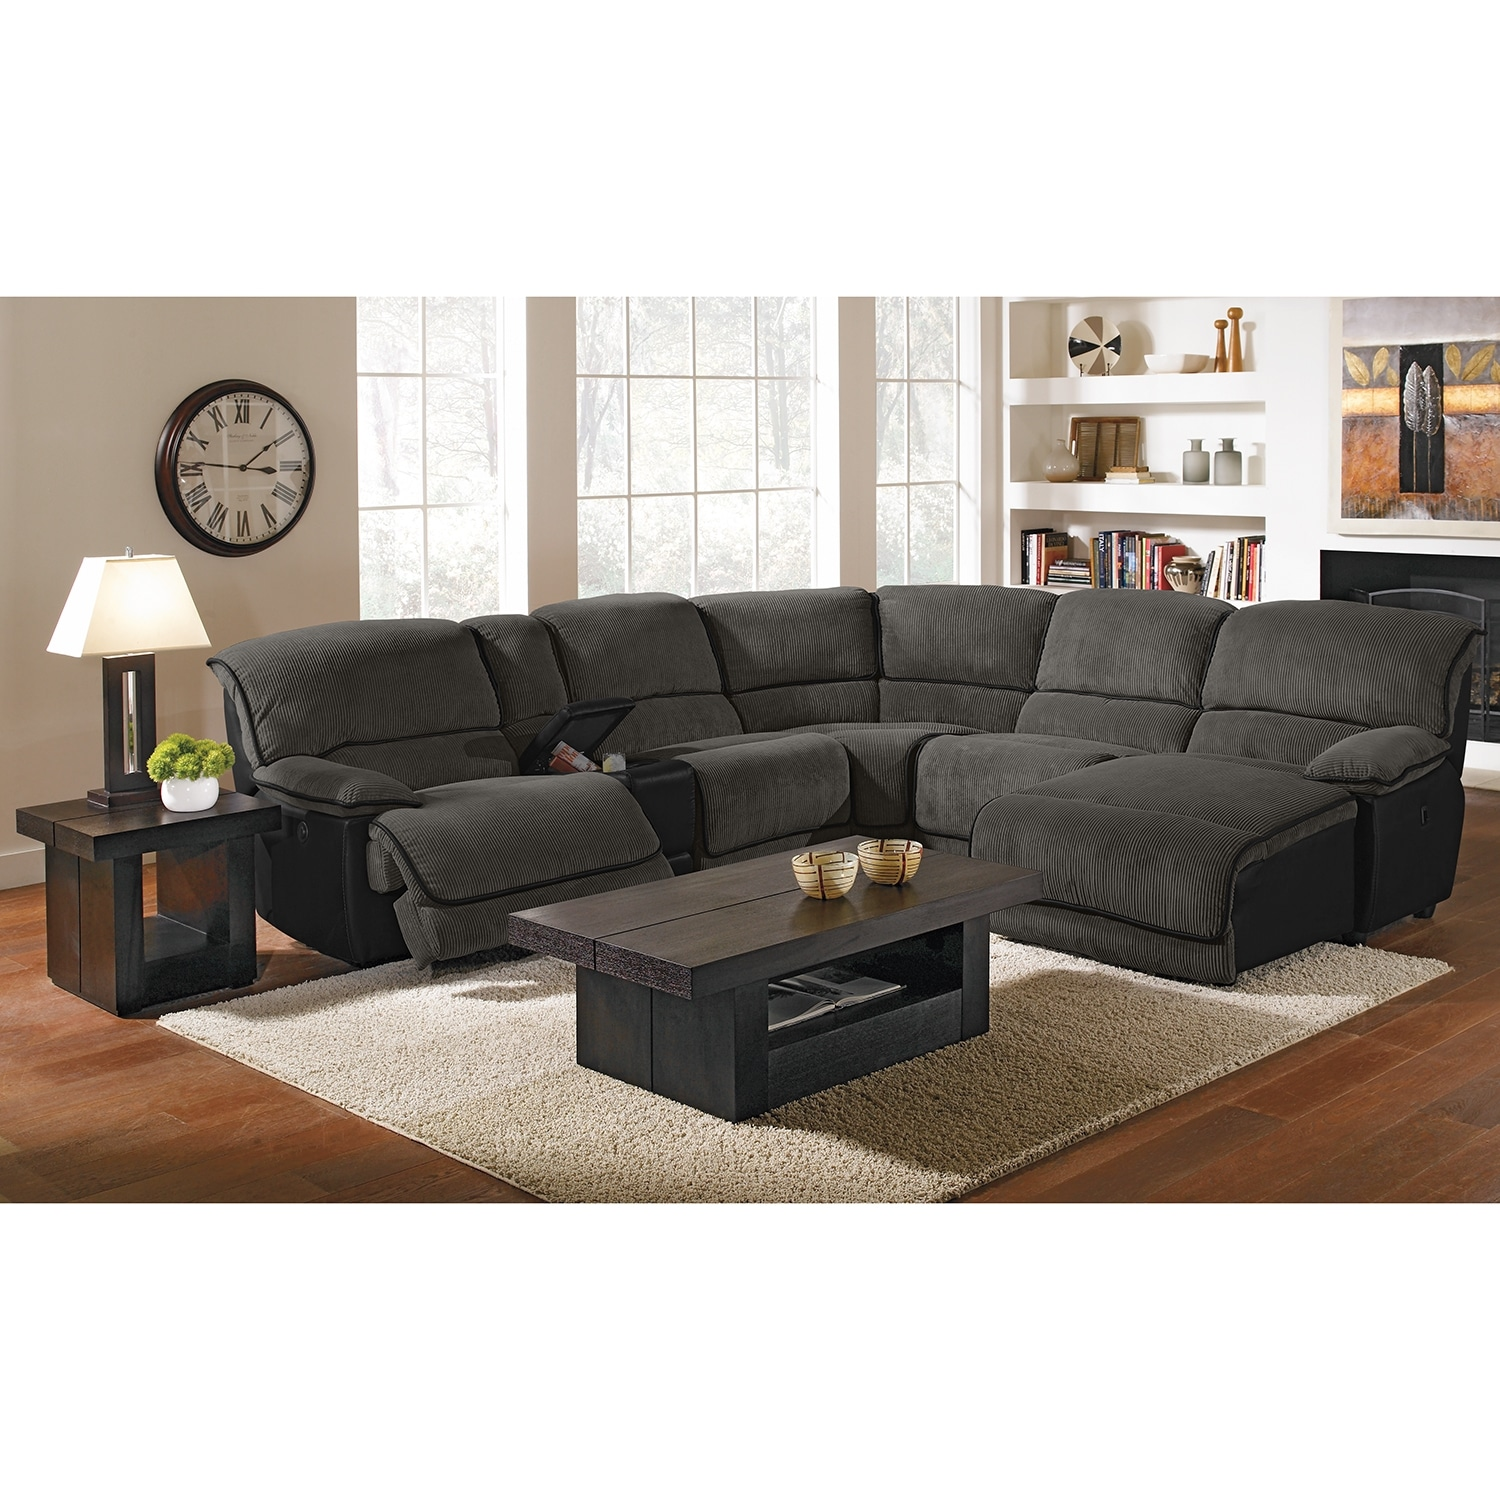 del mar custom sectional sofa martino leather 3 piece ii upholstery 6 pc power reclining